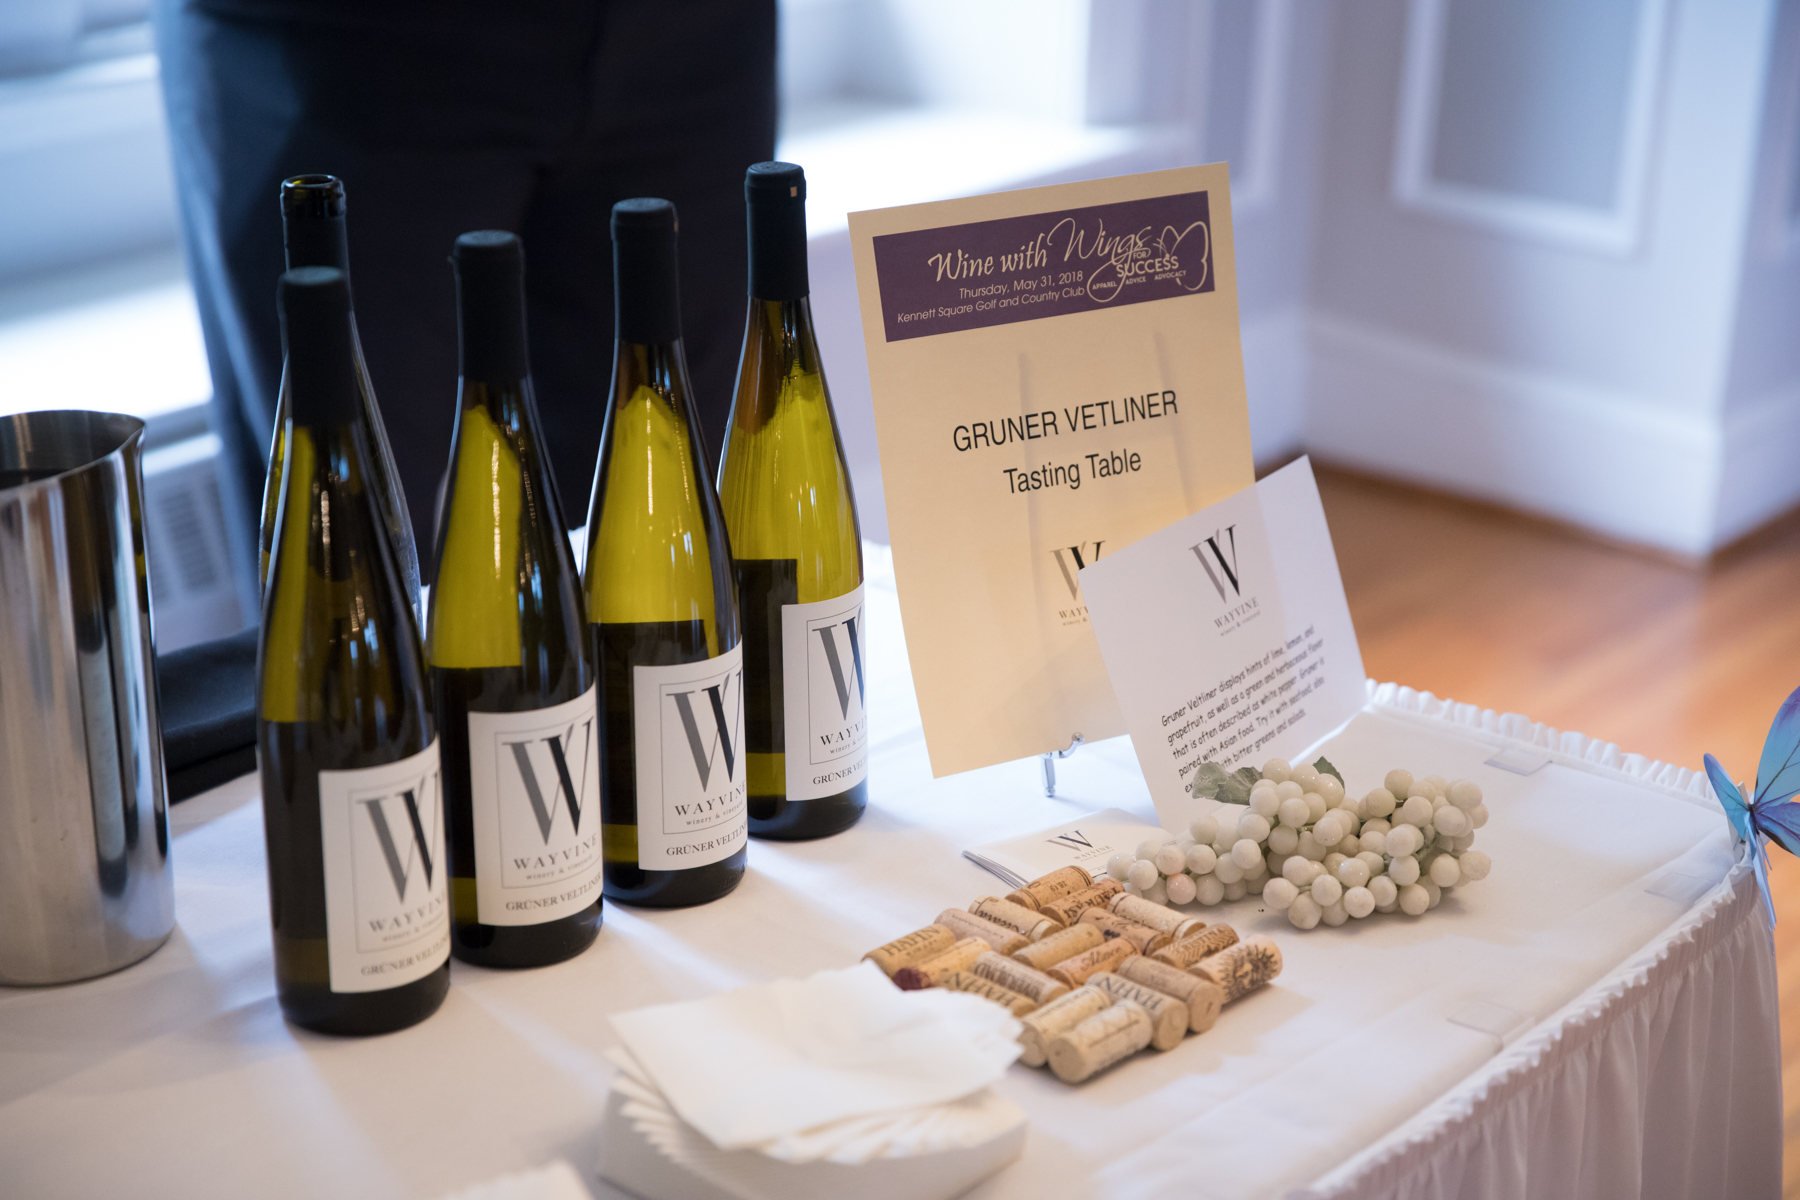 Guests sampled six wines from WAYVINE winery and vineyard, with food pairings.